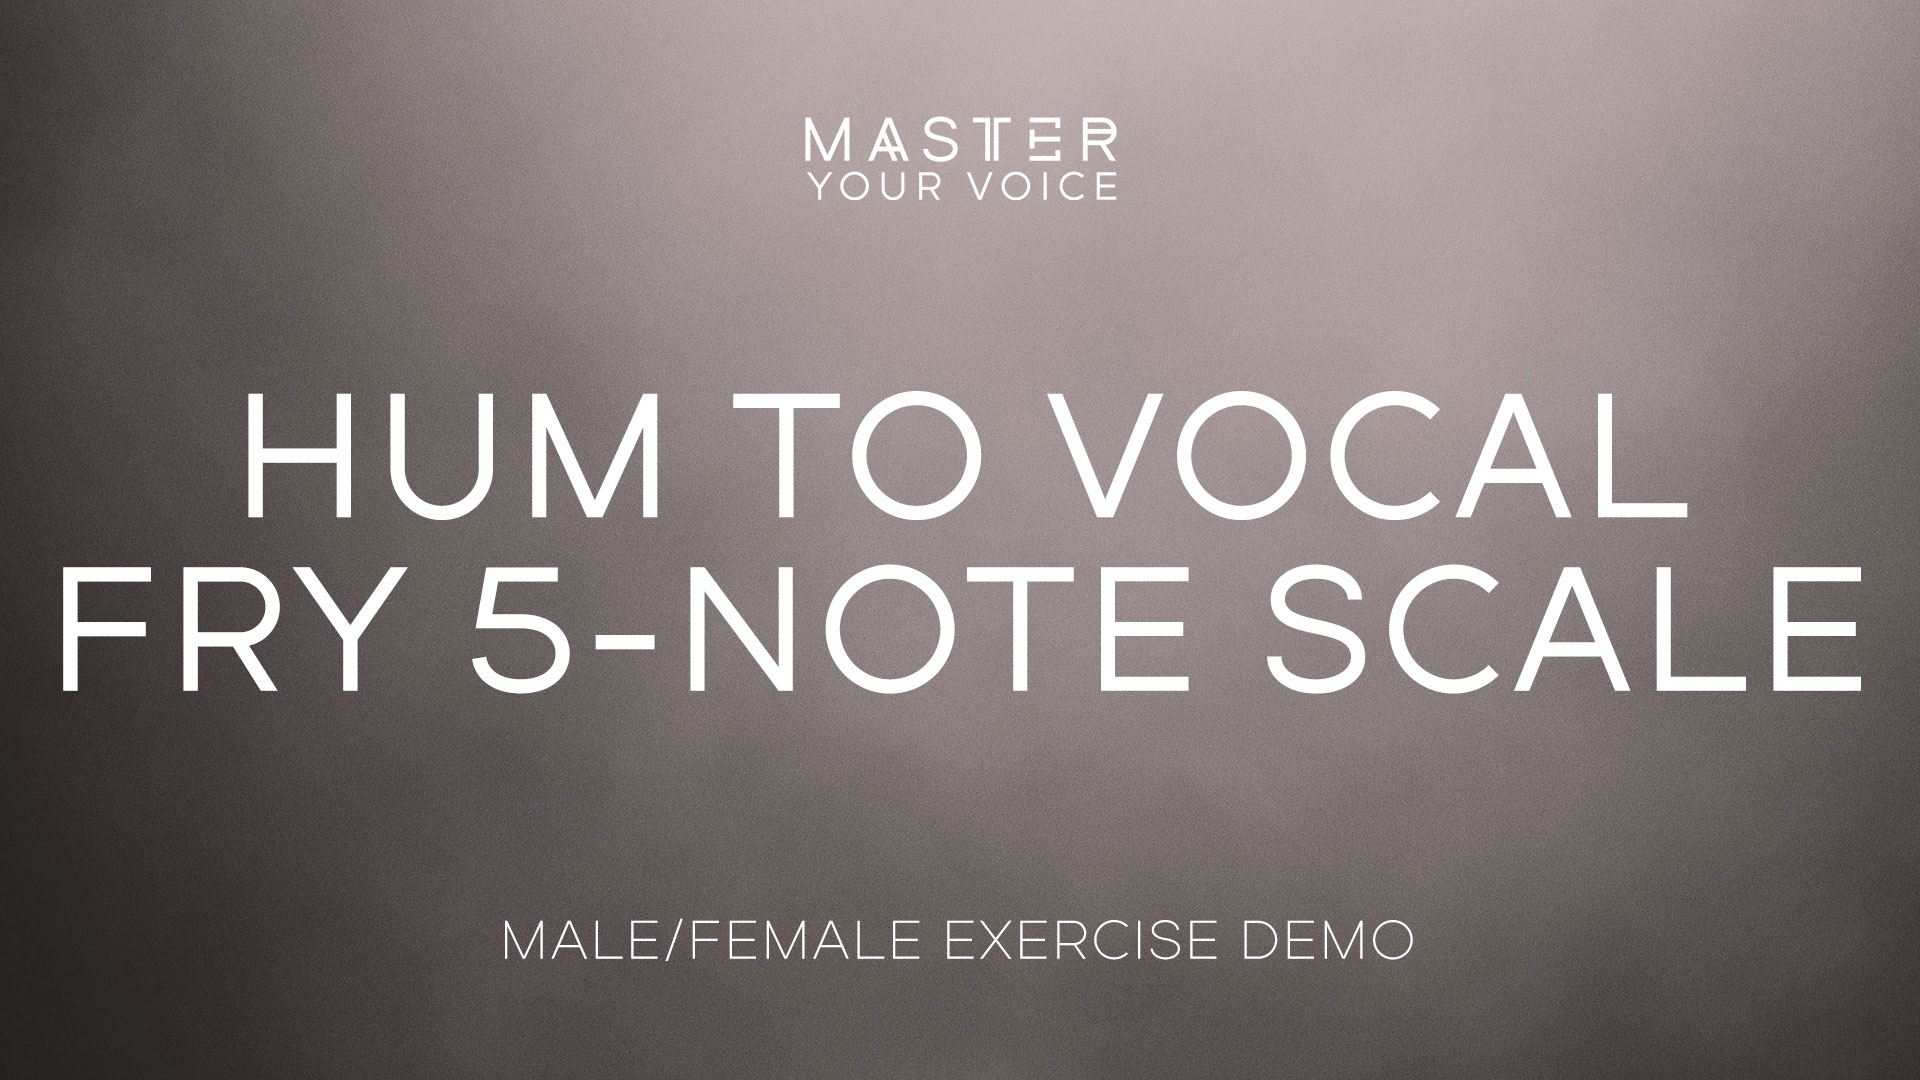 Hum to Vocal Fry 5-Note Scale Exercise Demo